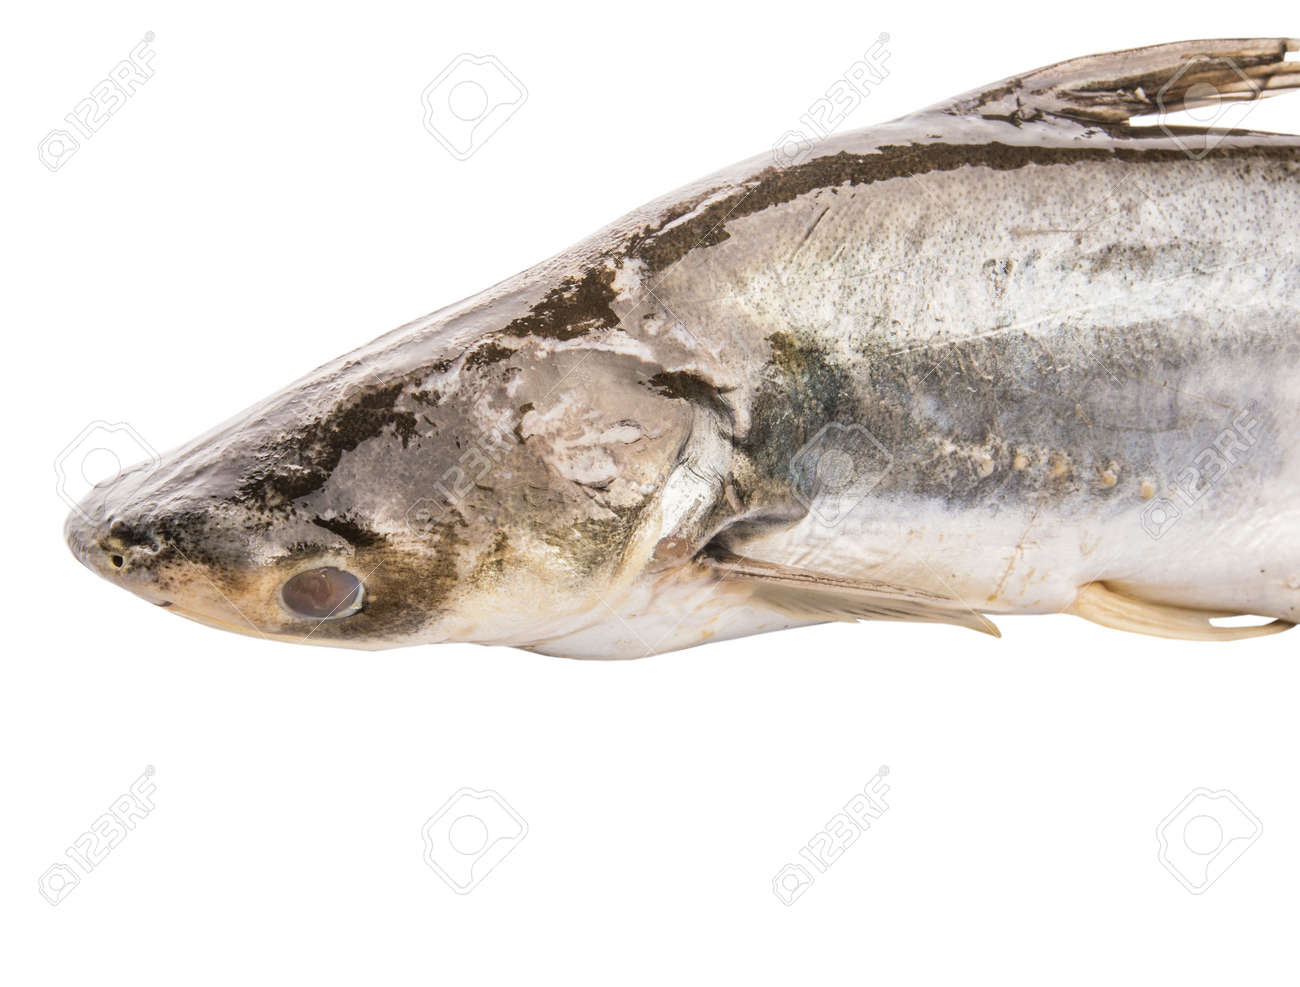 Freshwater fish malaysia - Stock Photo Tropical Pangasius Sutchi Freshwater Fish Over White Background